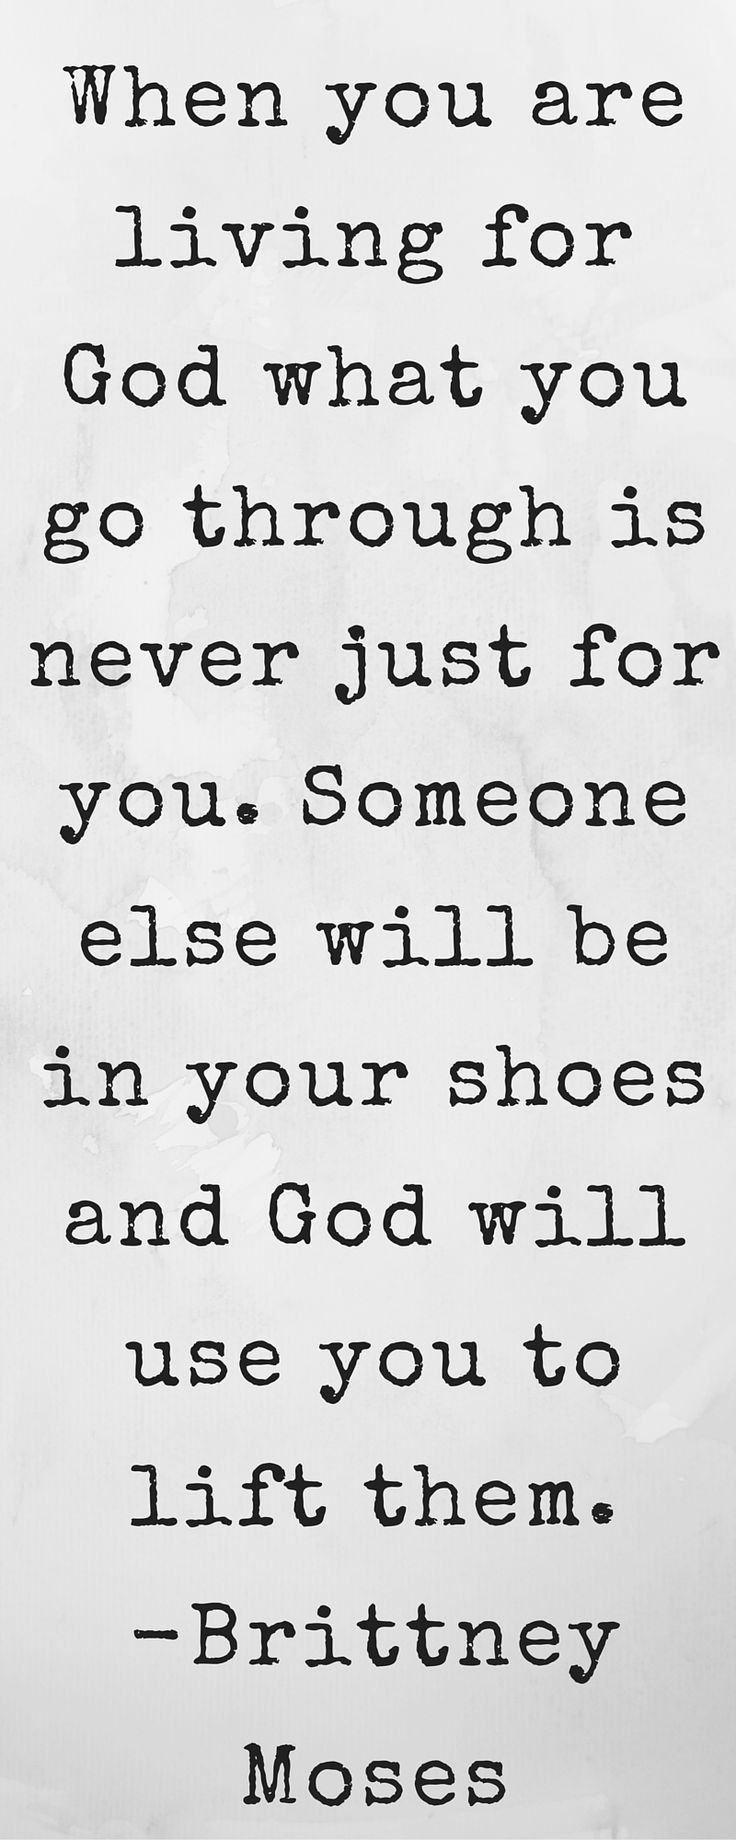 I LOVE this!!! LIVE FOR GOD!Instagram: brittneymoses | Click for blogs on healthy, biblical, every day living! #Faith #Inspiration #ChristianQuotes